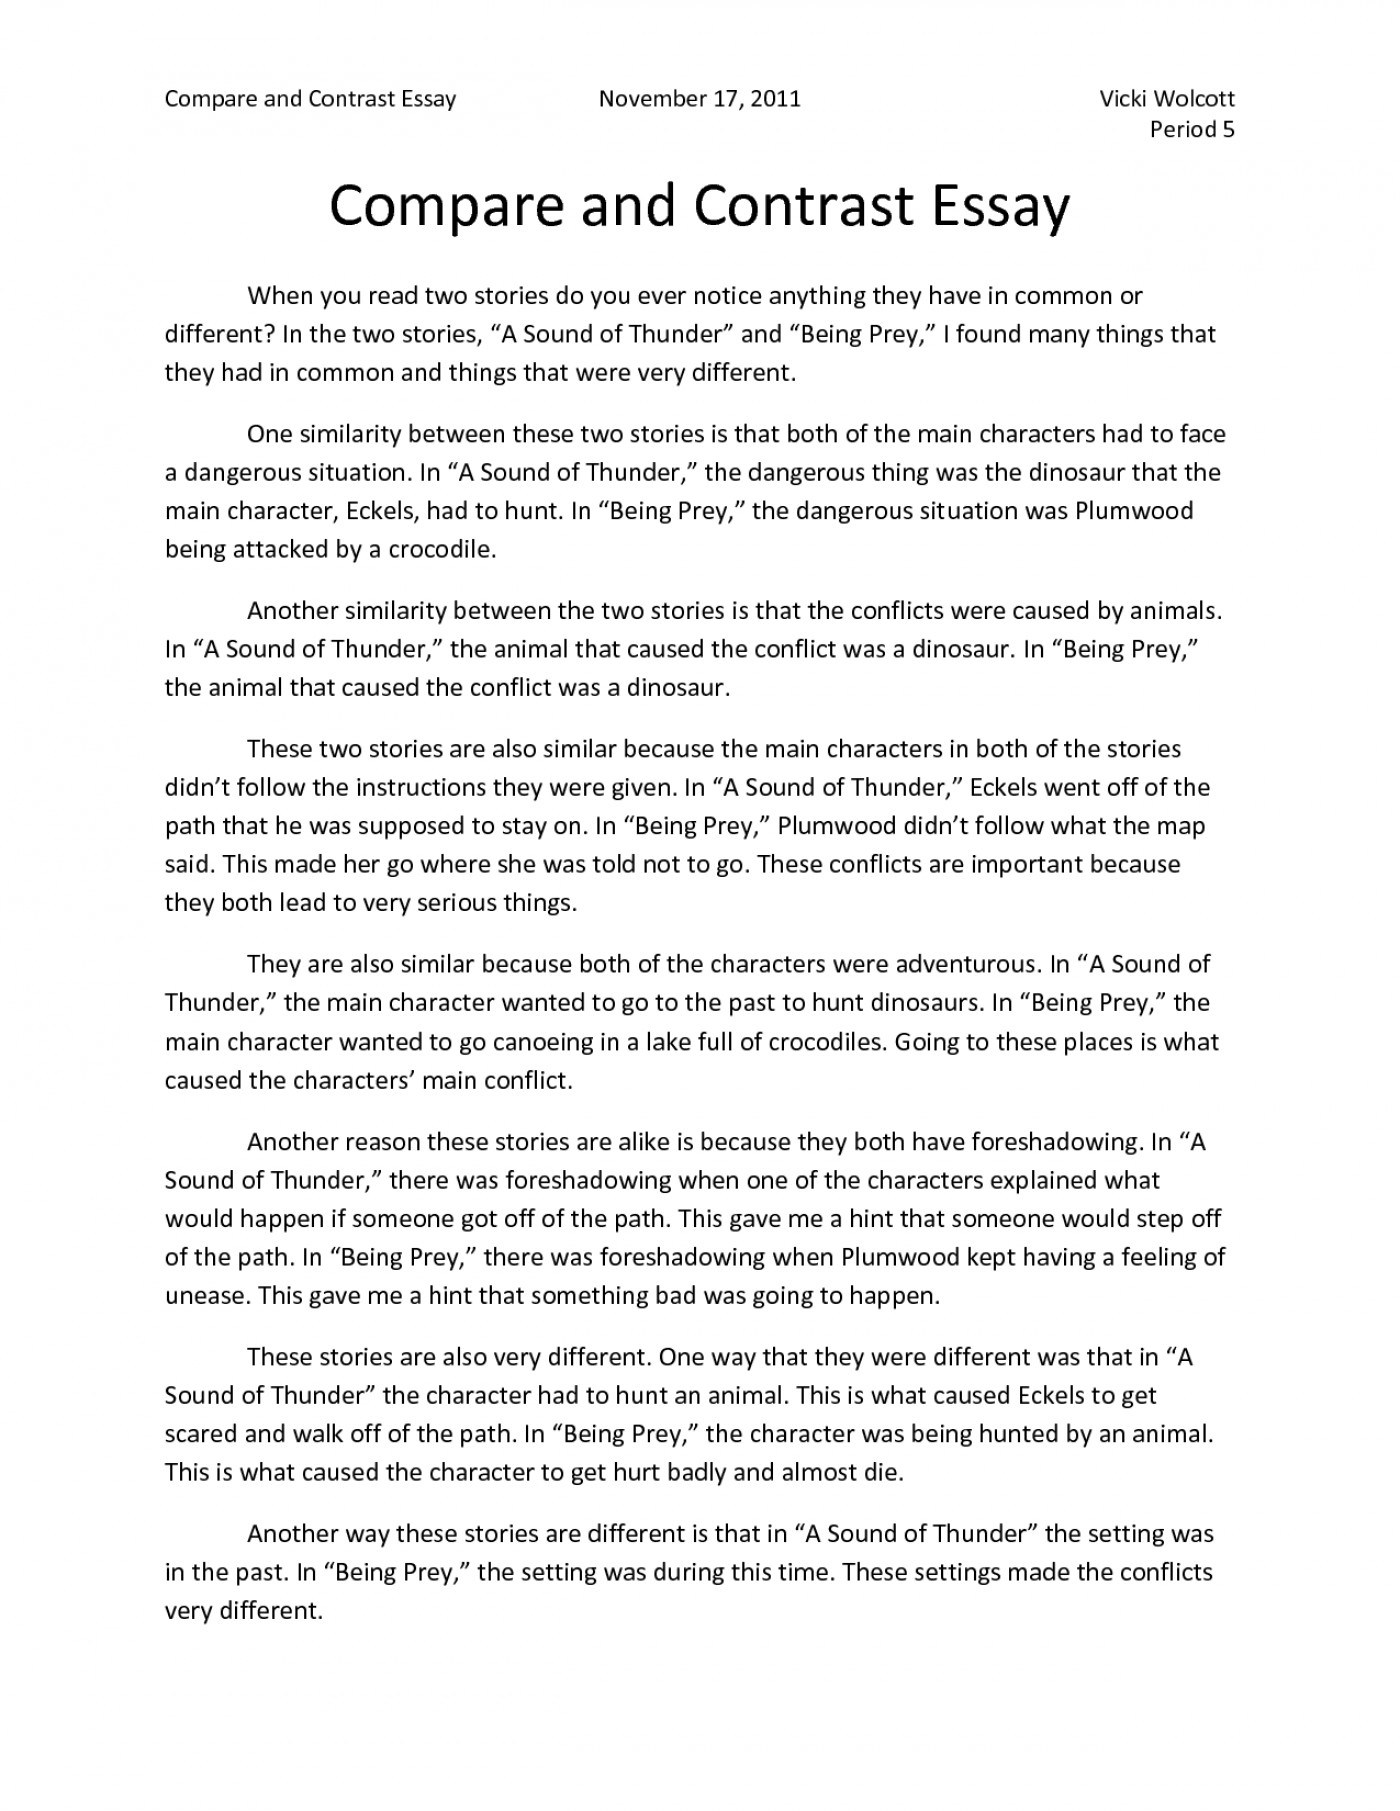 003 Perfect Essays Compare And Contrast Essay Introduction Example How To Write College Striking Comparison Examples Free Pdf 4th Grade For 5th 1400